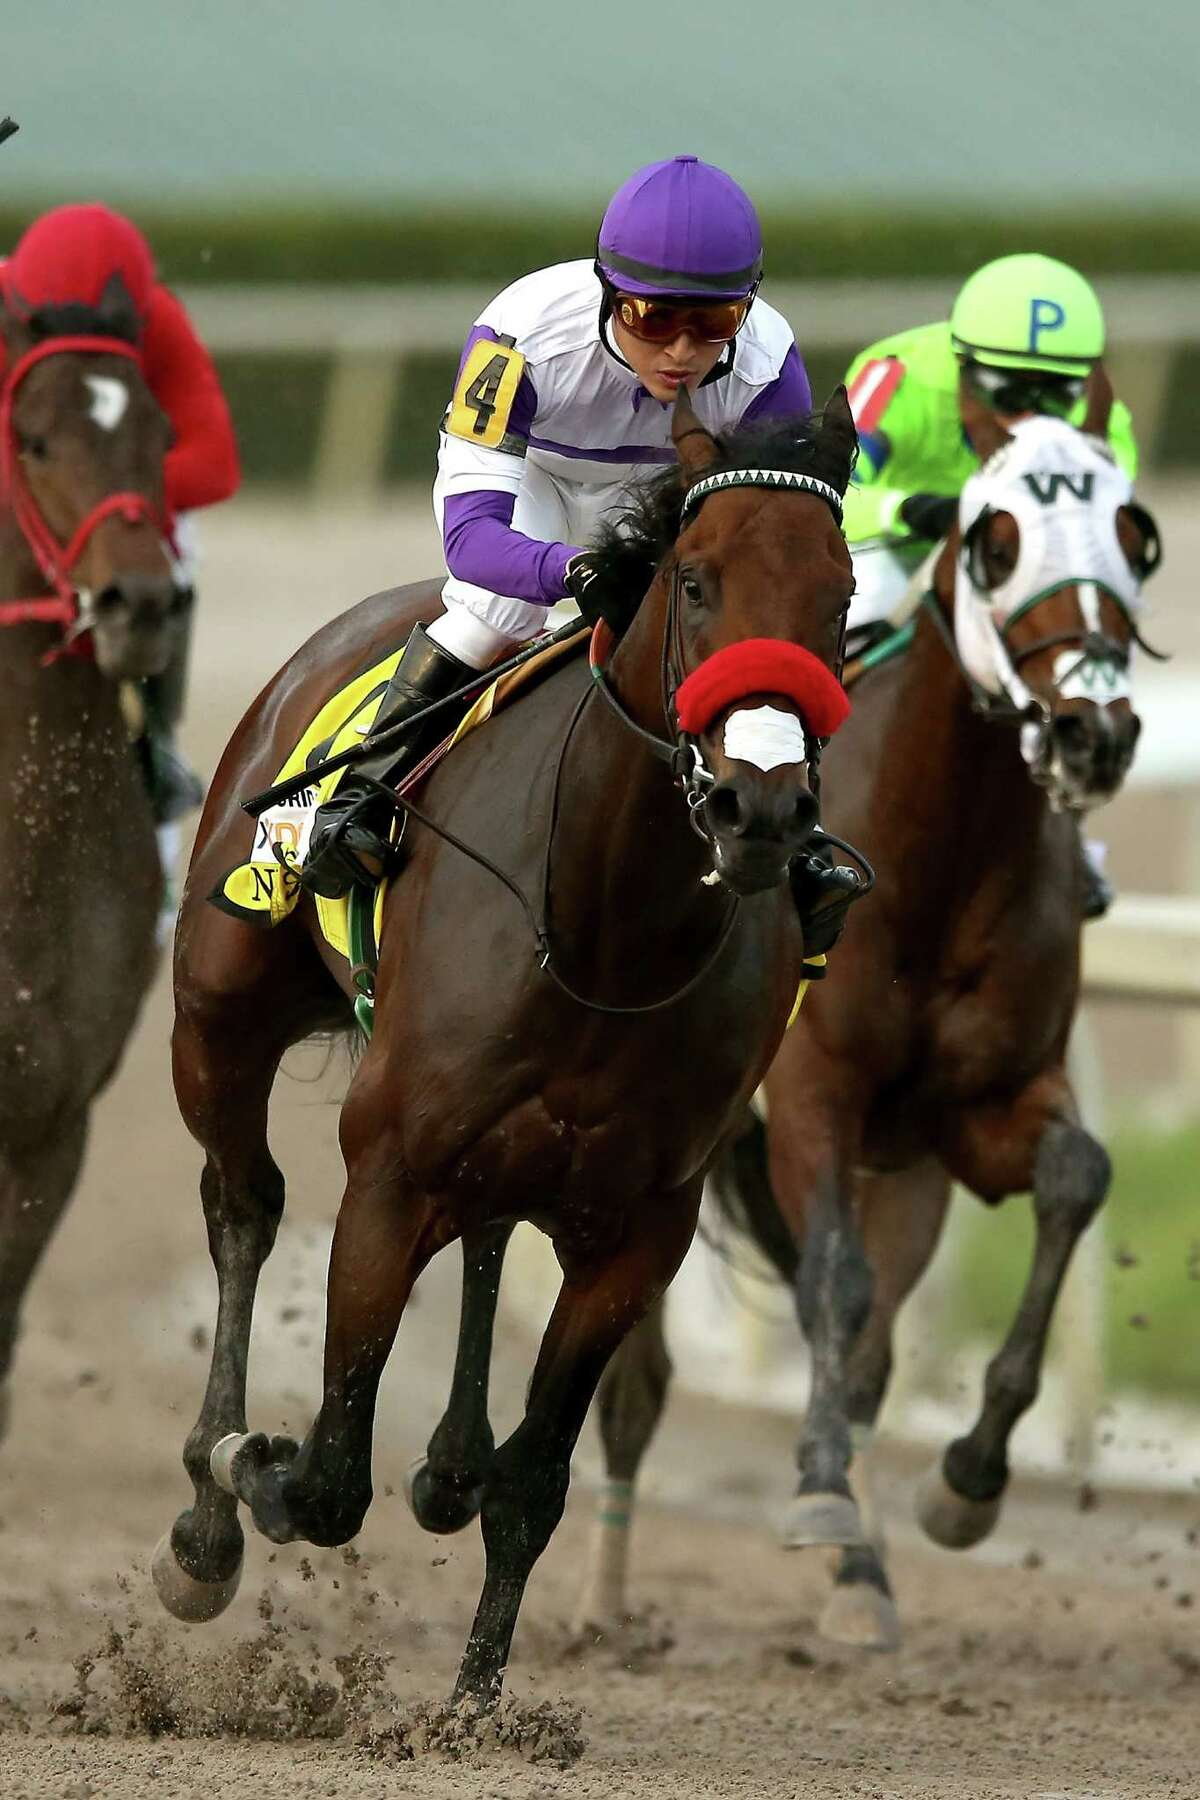 HALLANDALE, FL - APRIL 02: Nyquist #4, riden by Mario Gutuerrez, comes out of turn four during the 2016 Florida Derby at Gulfstream Park April 2, 2016 in Hallandale, Florida. (Photo by Matthew Stockman/Getty Images) ORG XMIT: 625515071